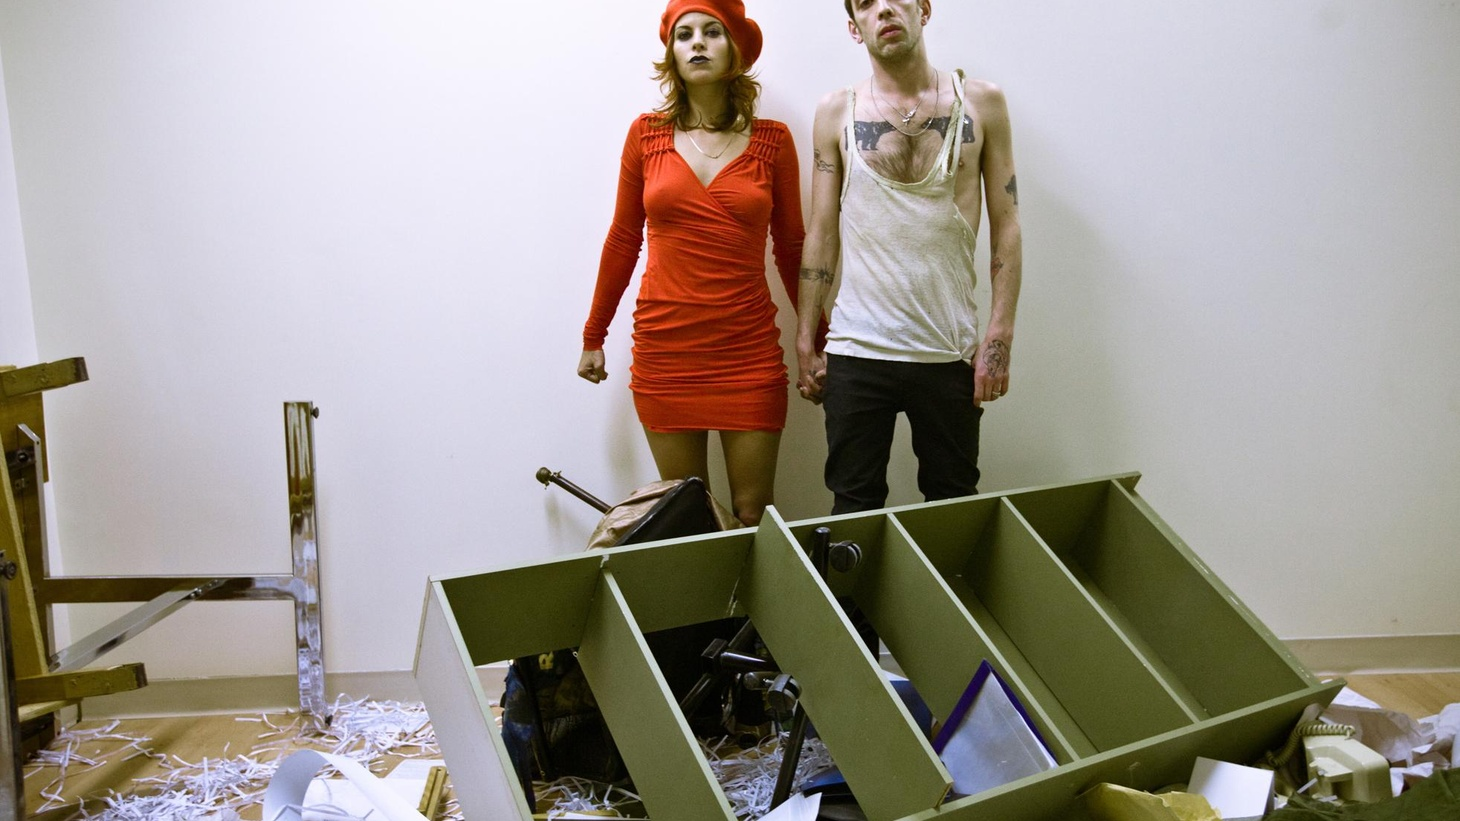 As a Wolf Parade fan, I was curious about the release of another album from Handsome Furs, the husband and wife duo comprised of Wolf Parade frontman Dan Boeckner and his wife Alexei Perry.